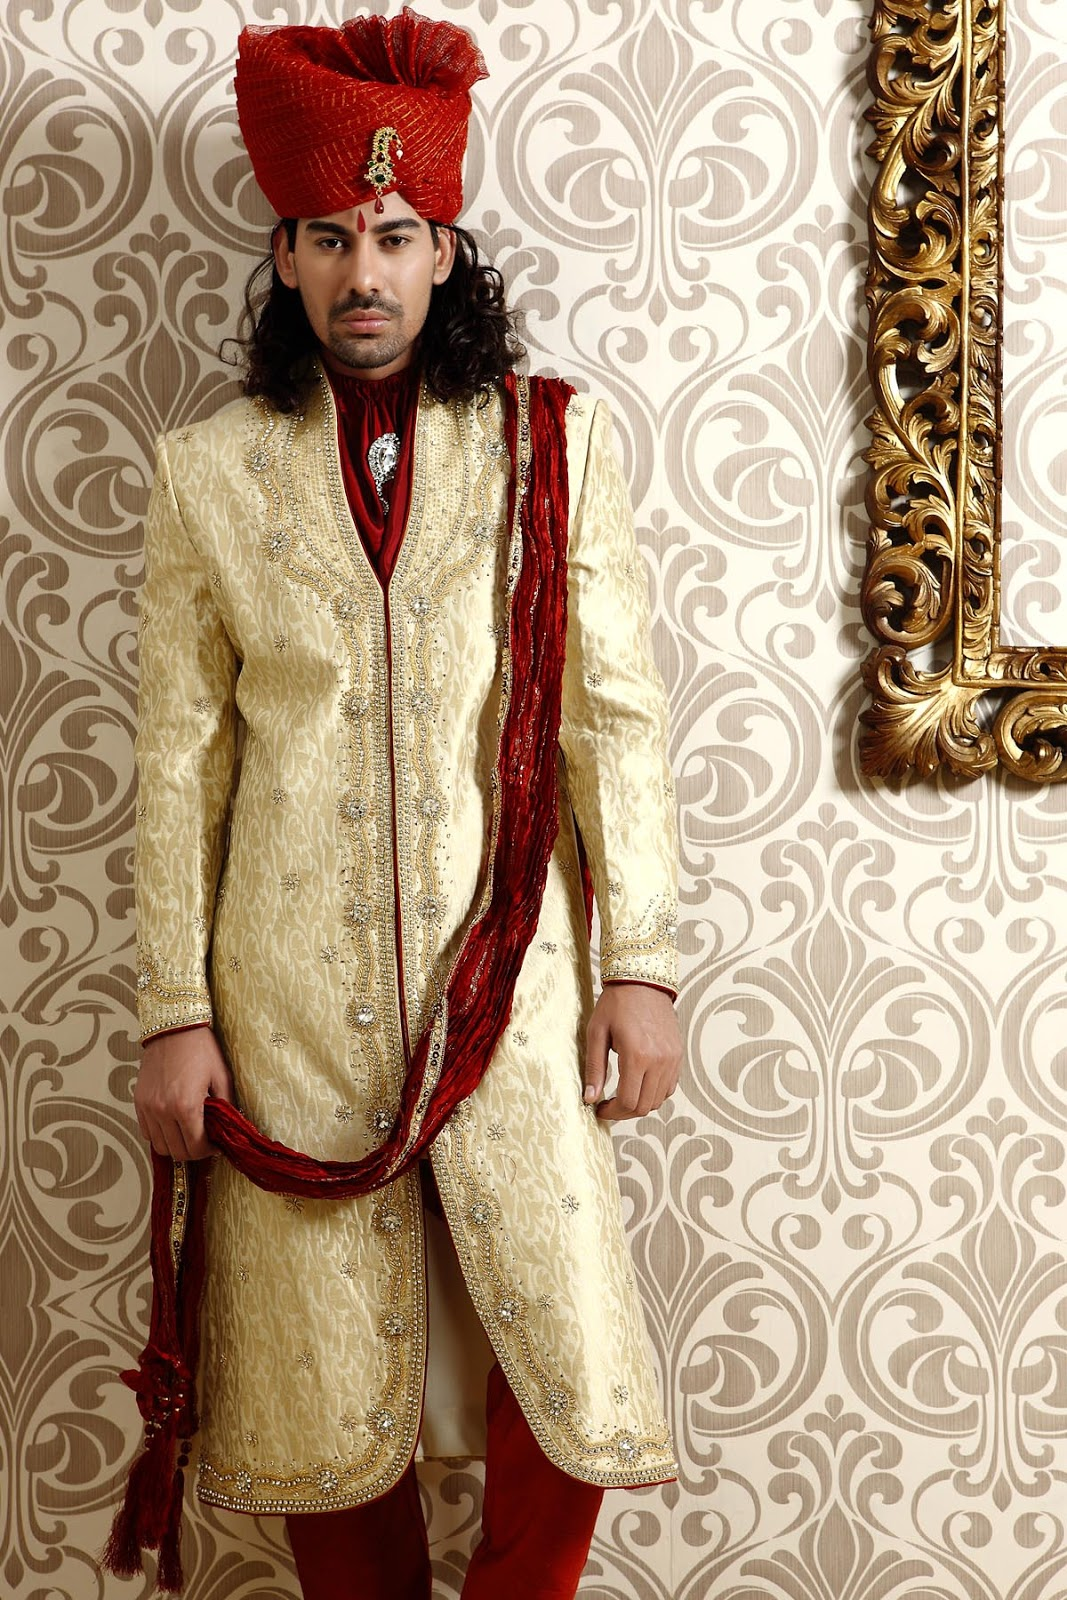 Indian Wedding Dress For Men With Hand Work Embroidery